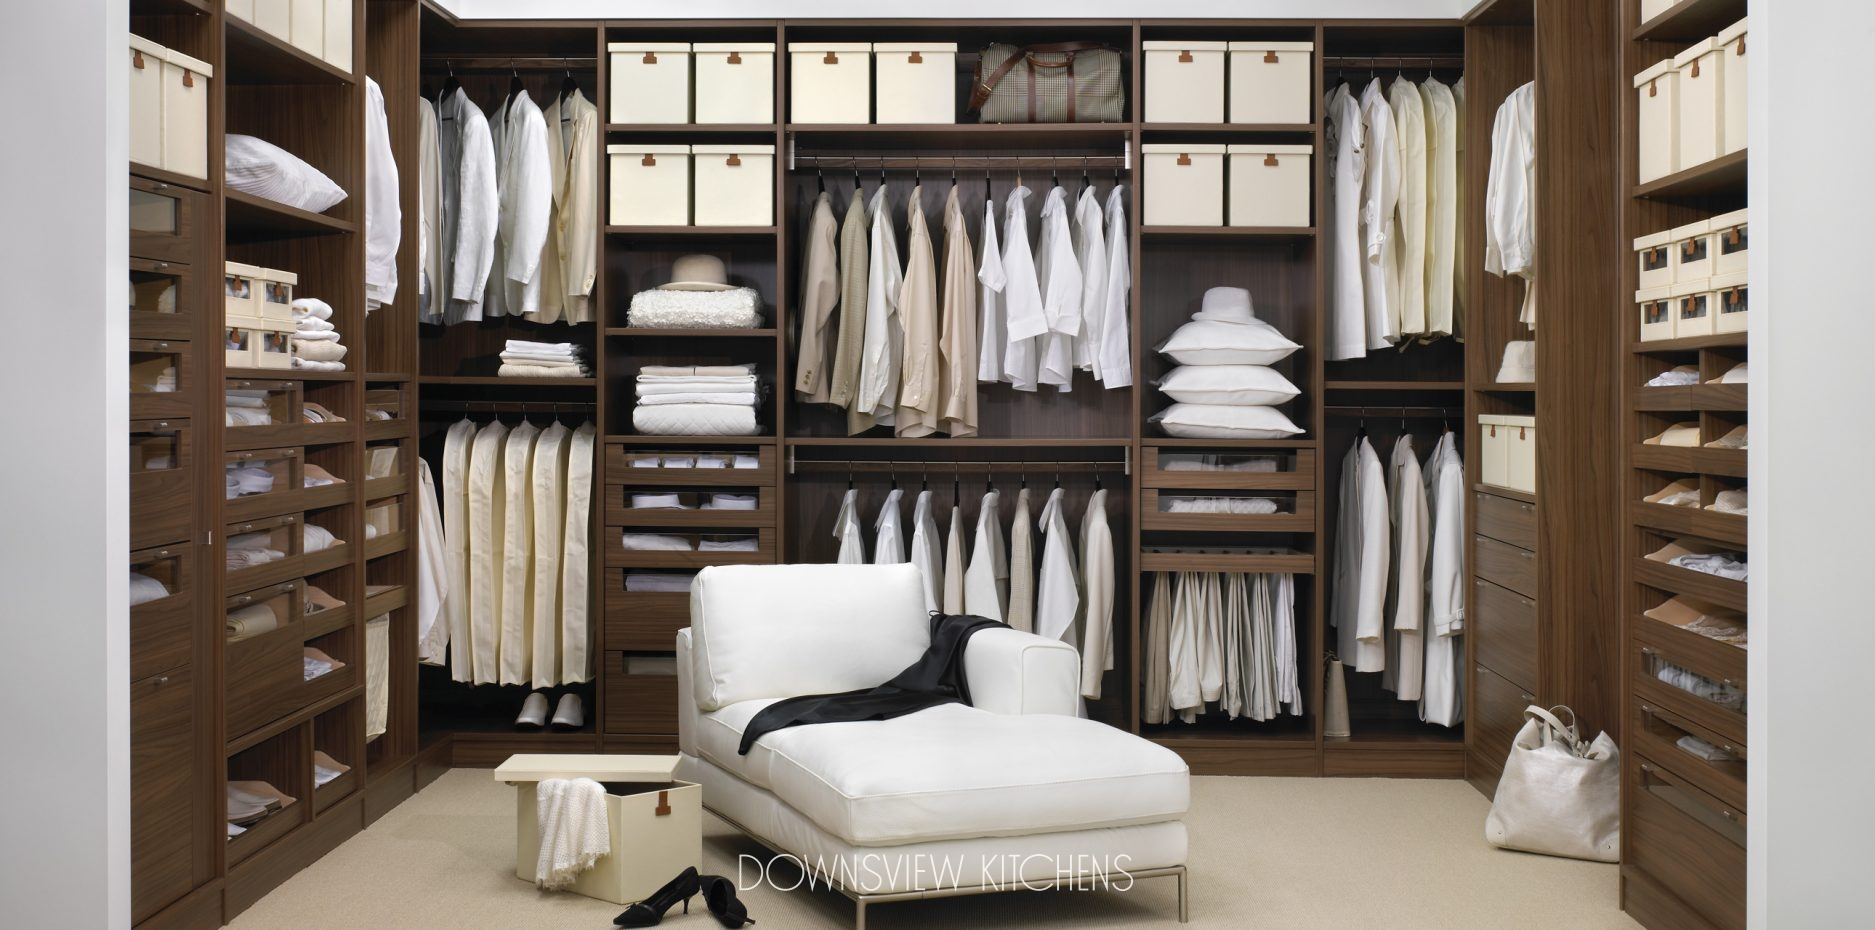 kitchen closets modern mat personal space downsview kitchens and fine custom cabinetry manufacturers of cabinets